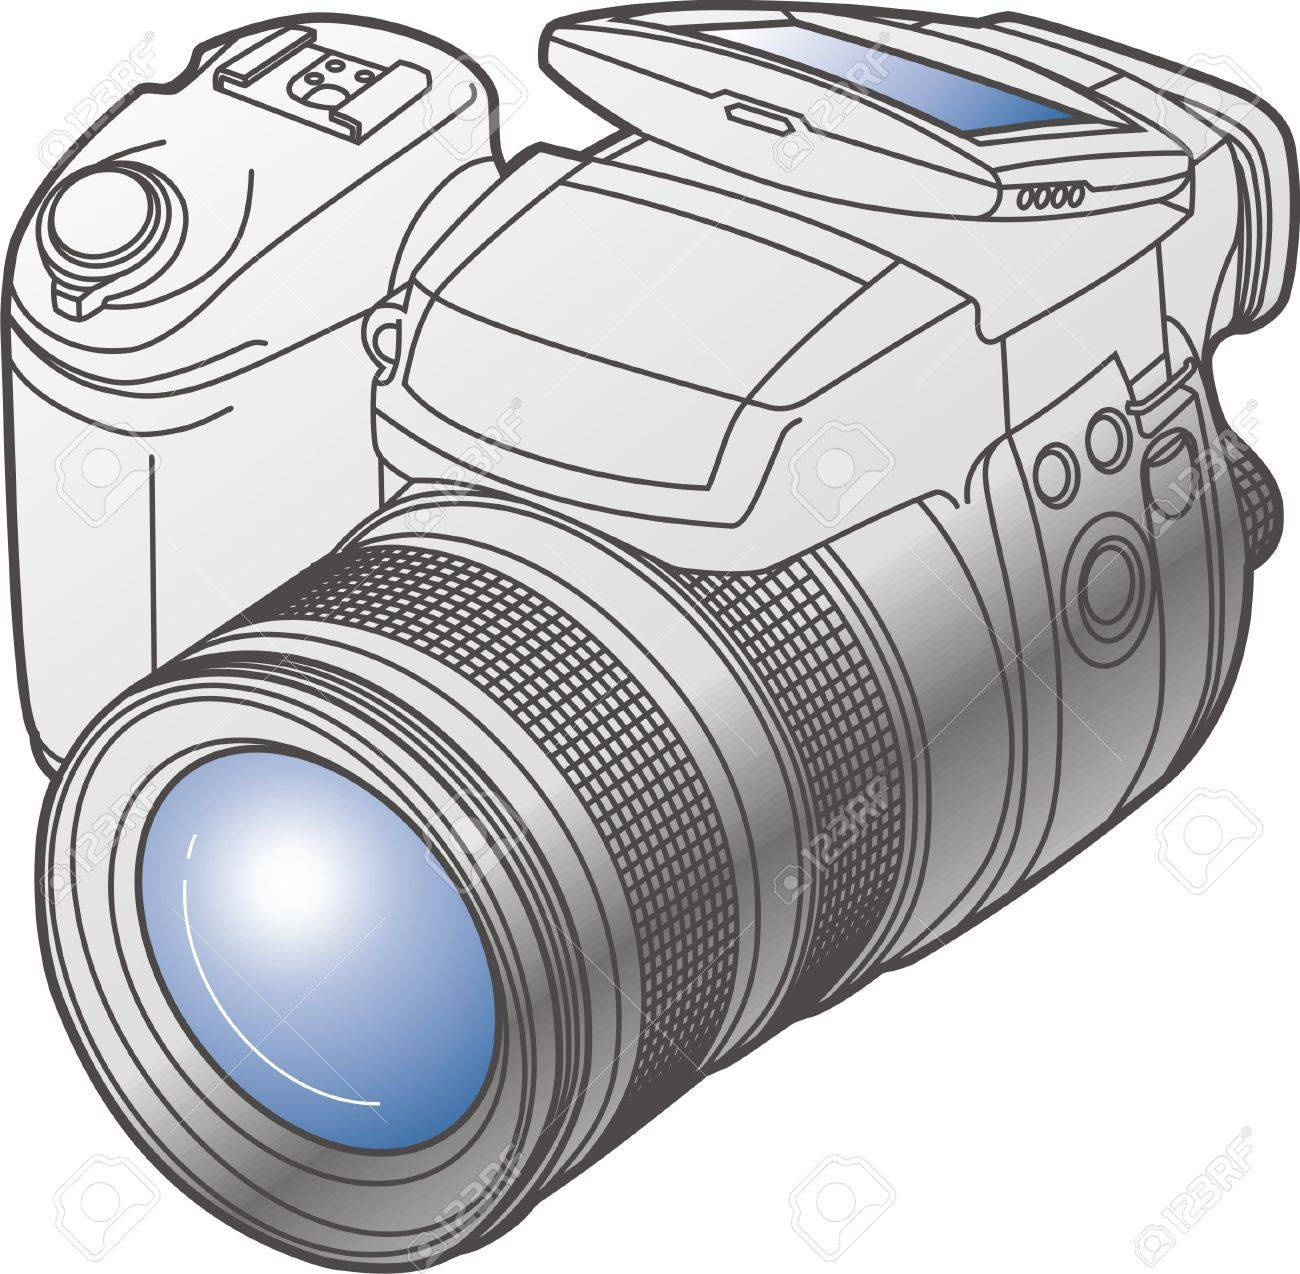 Modern Digital Camera In Vector Format Easy Repaint Royalty Free Cliparts Vectors And Stock Illustration Image 3746775